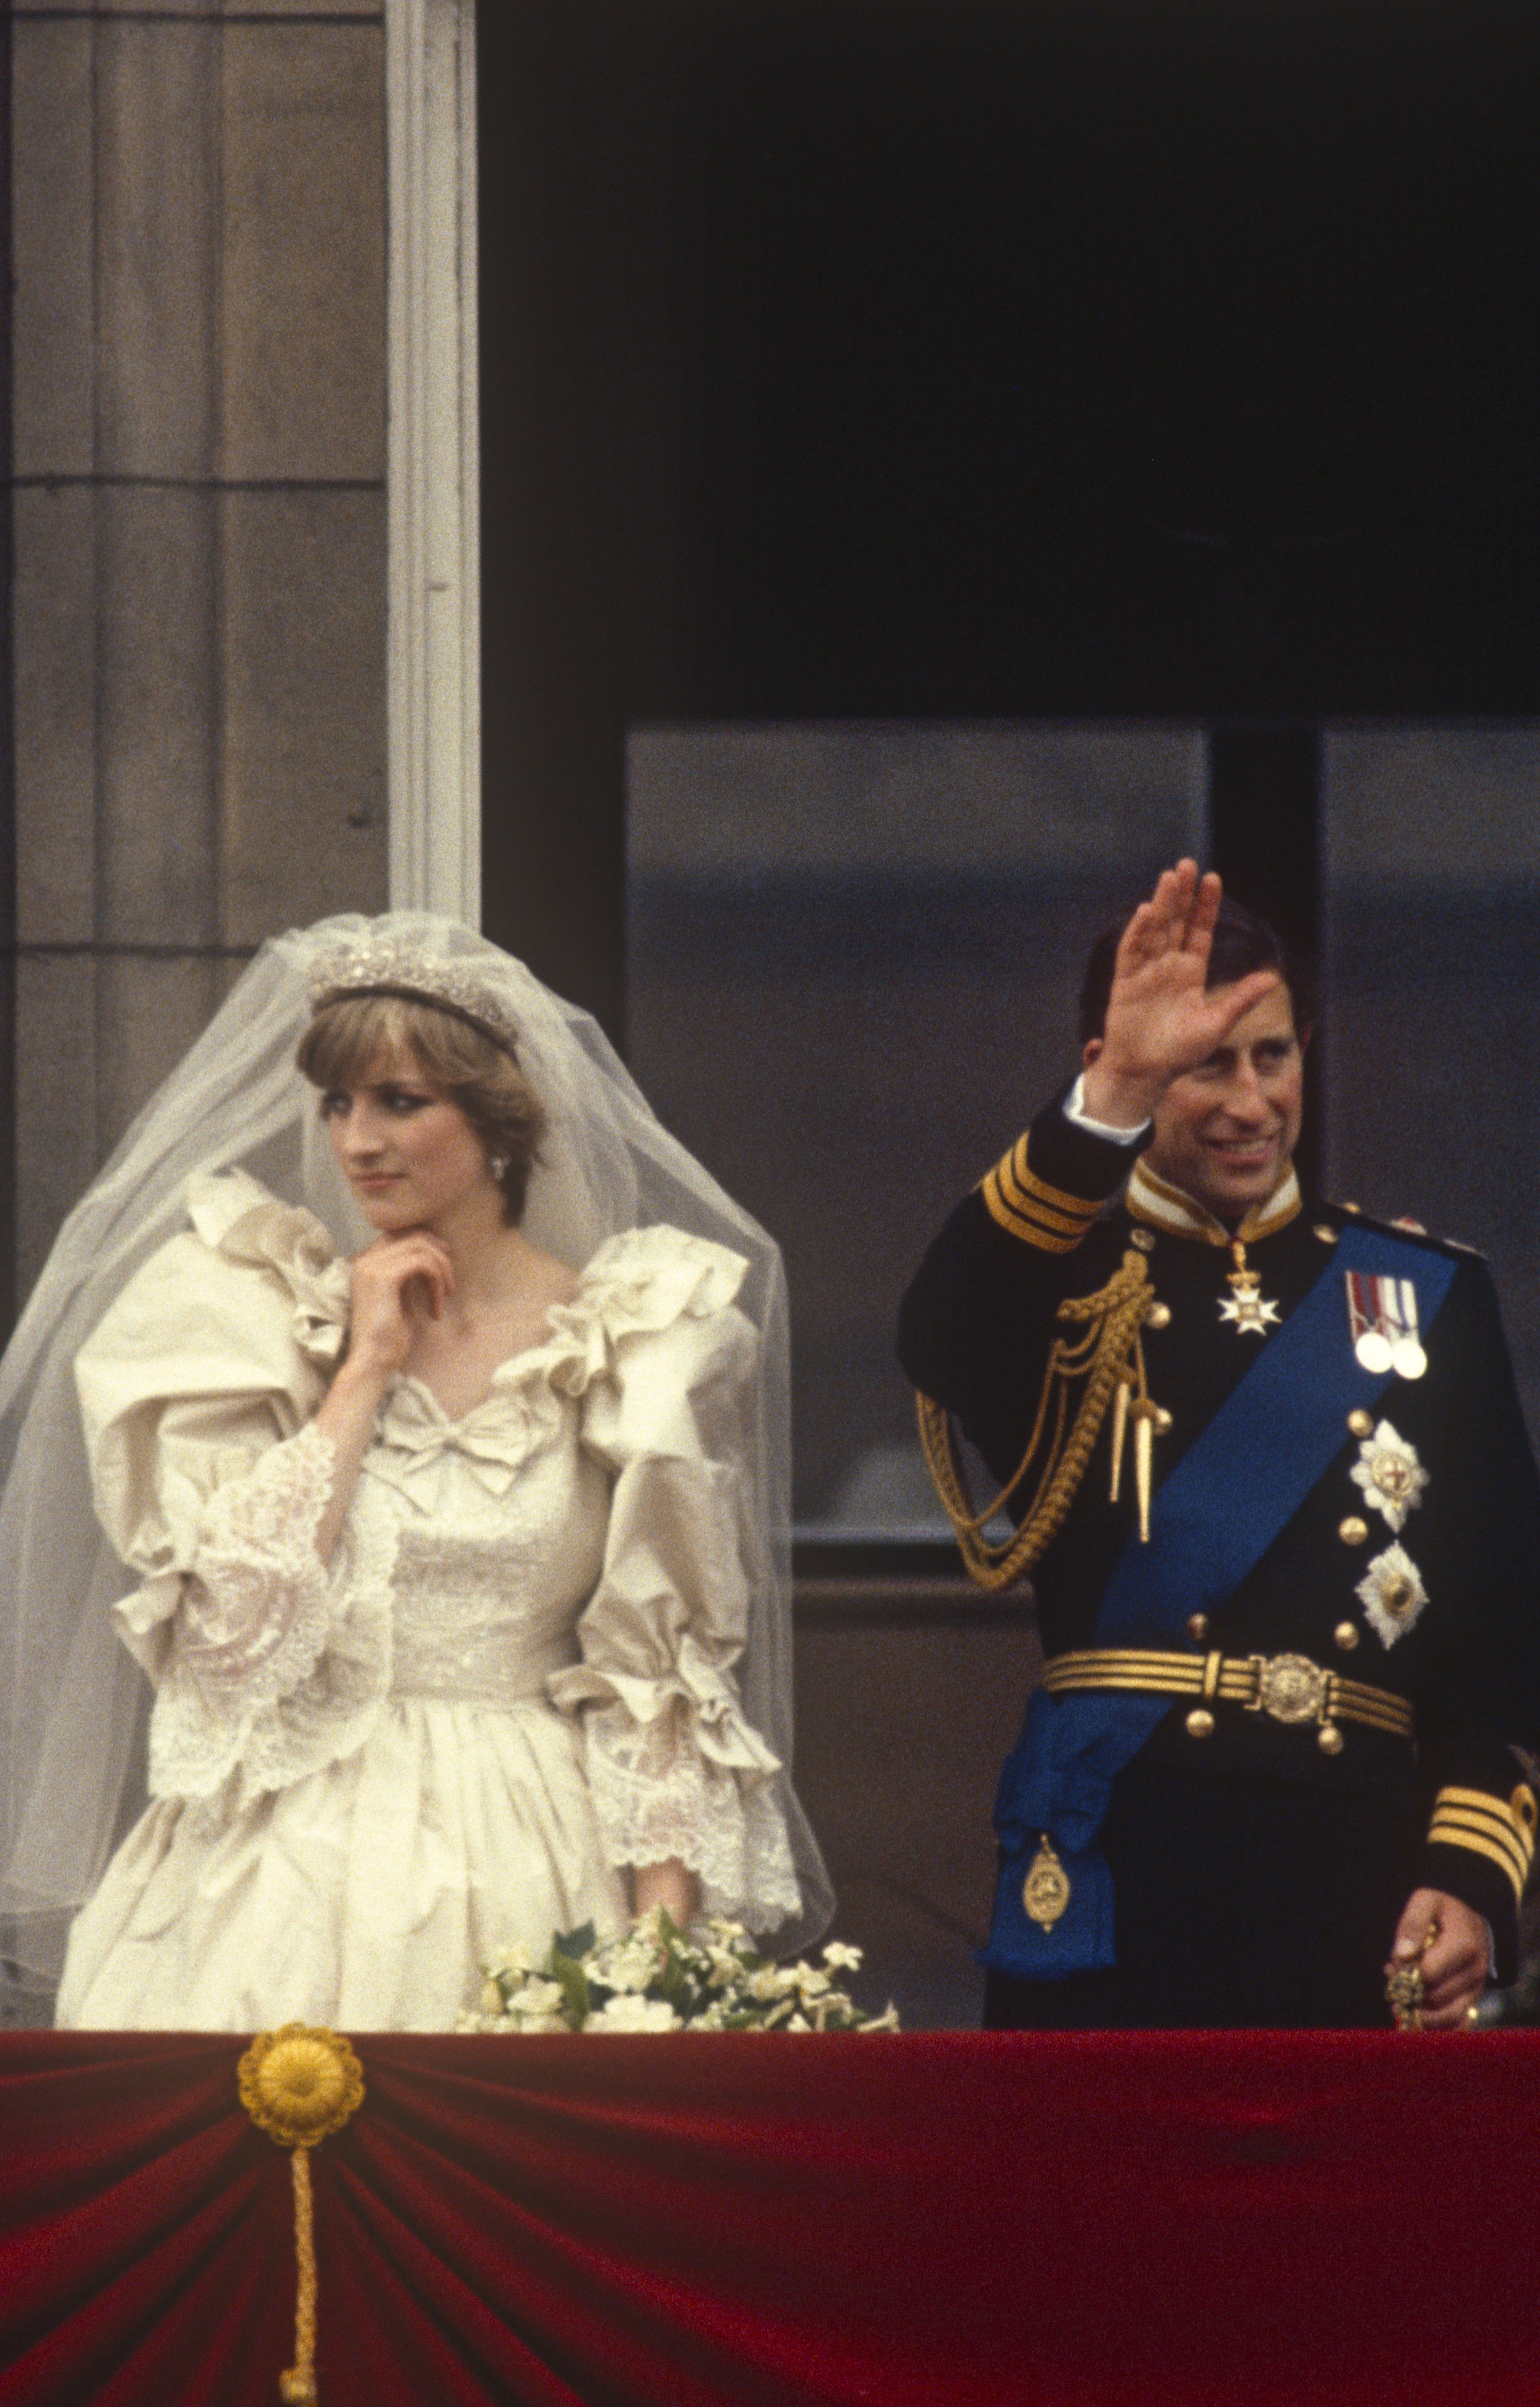 Prince Charles,Prince of Wales and Diana, Princess of Wales pose on the balcony of Buckingham Palace on their wedding day, 29th July 1981 | Photo: GettyImages